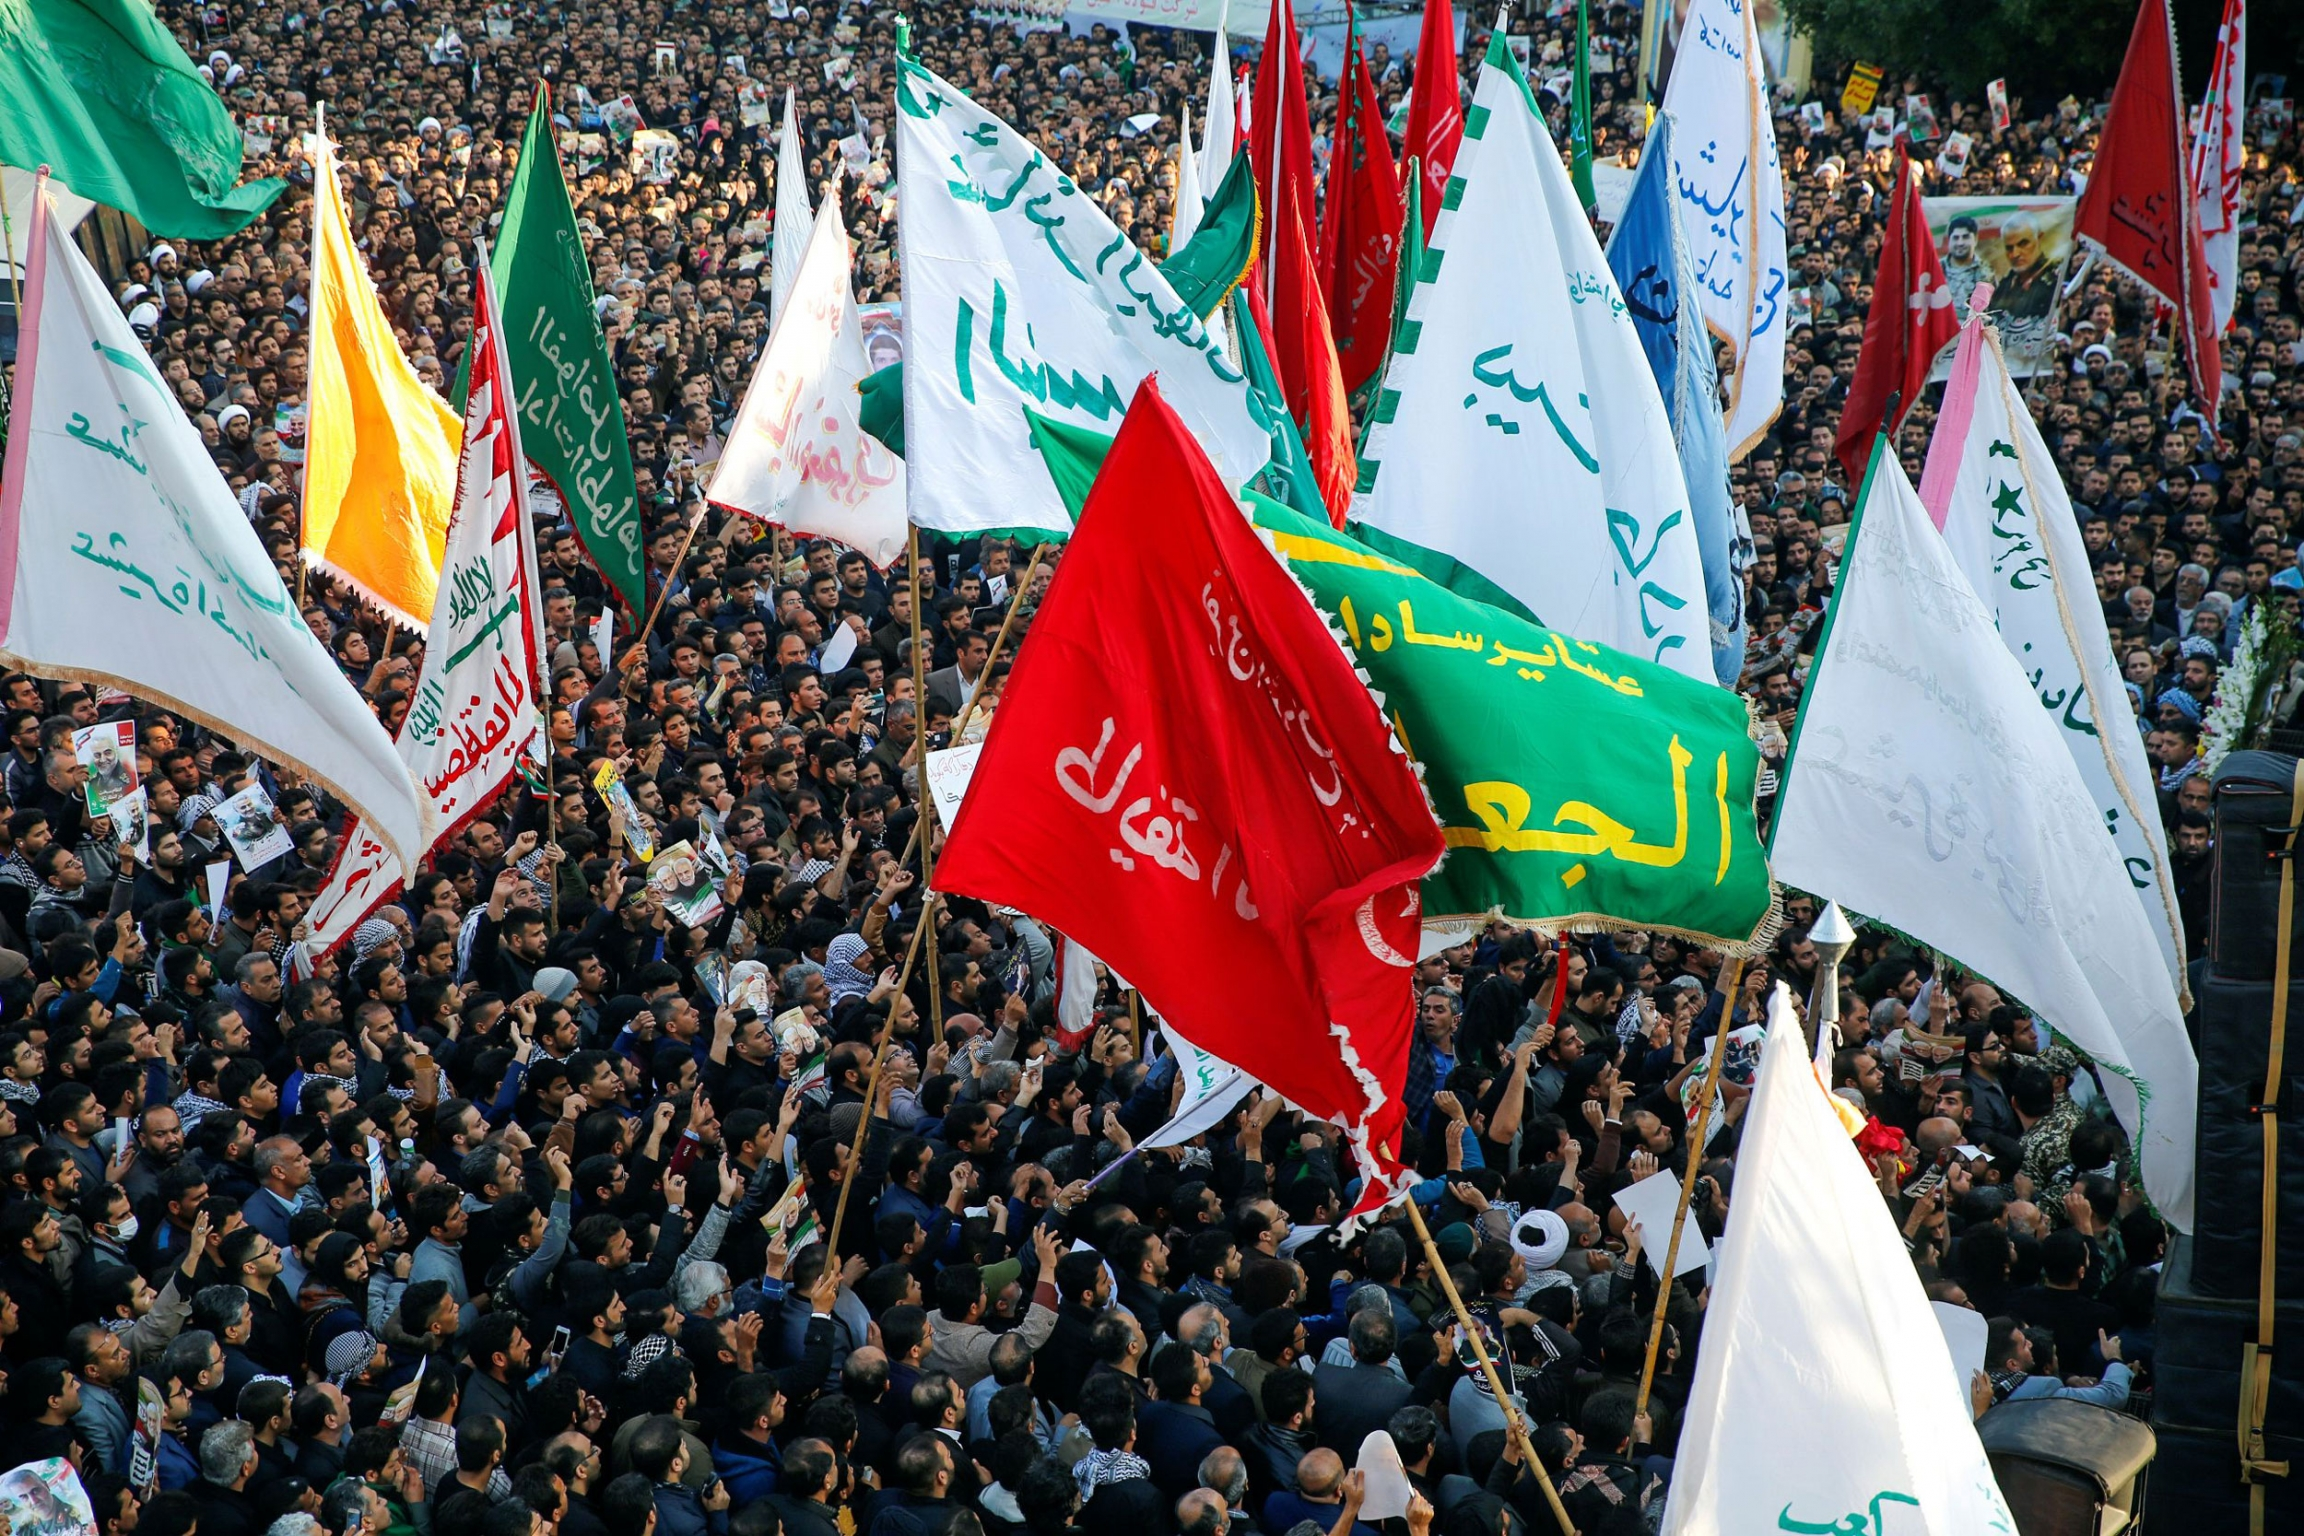 A large crowd of people are shown from above with dozens of flags waving.